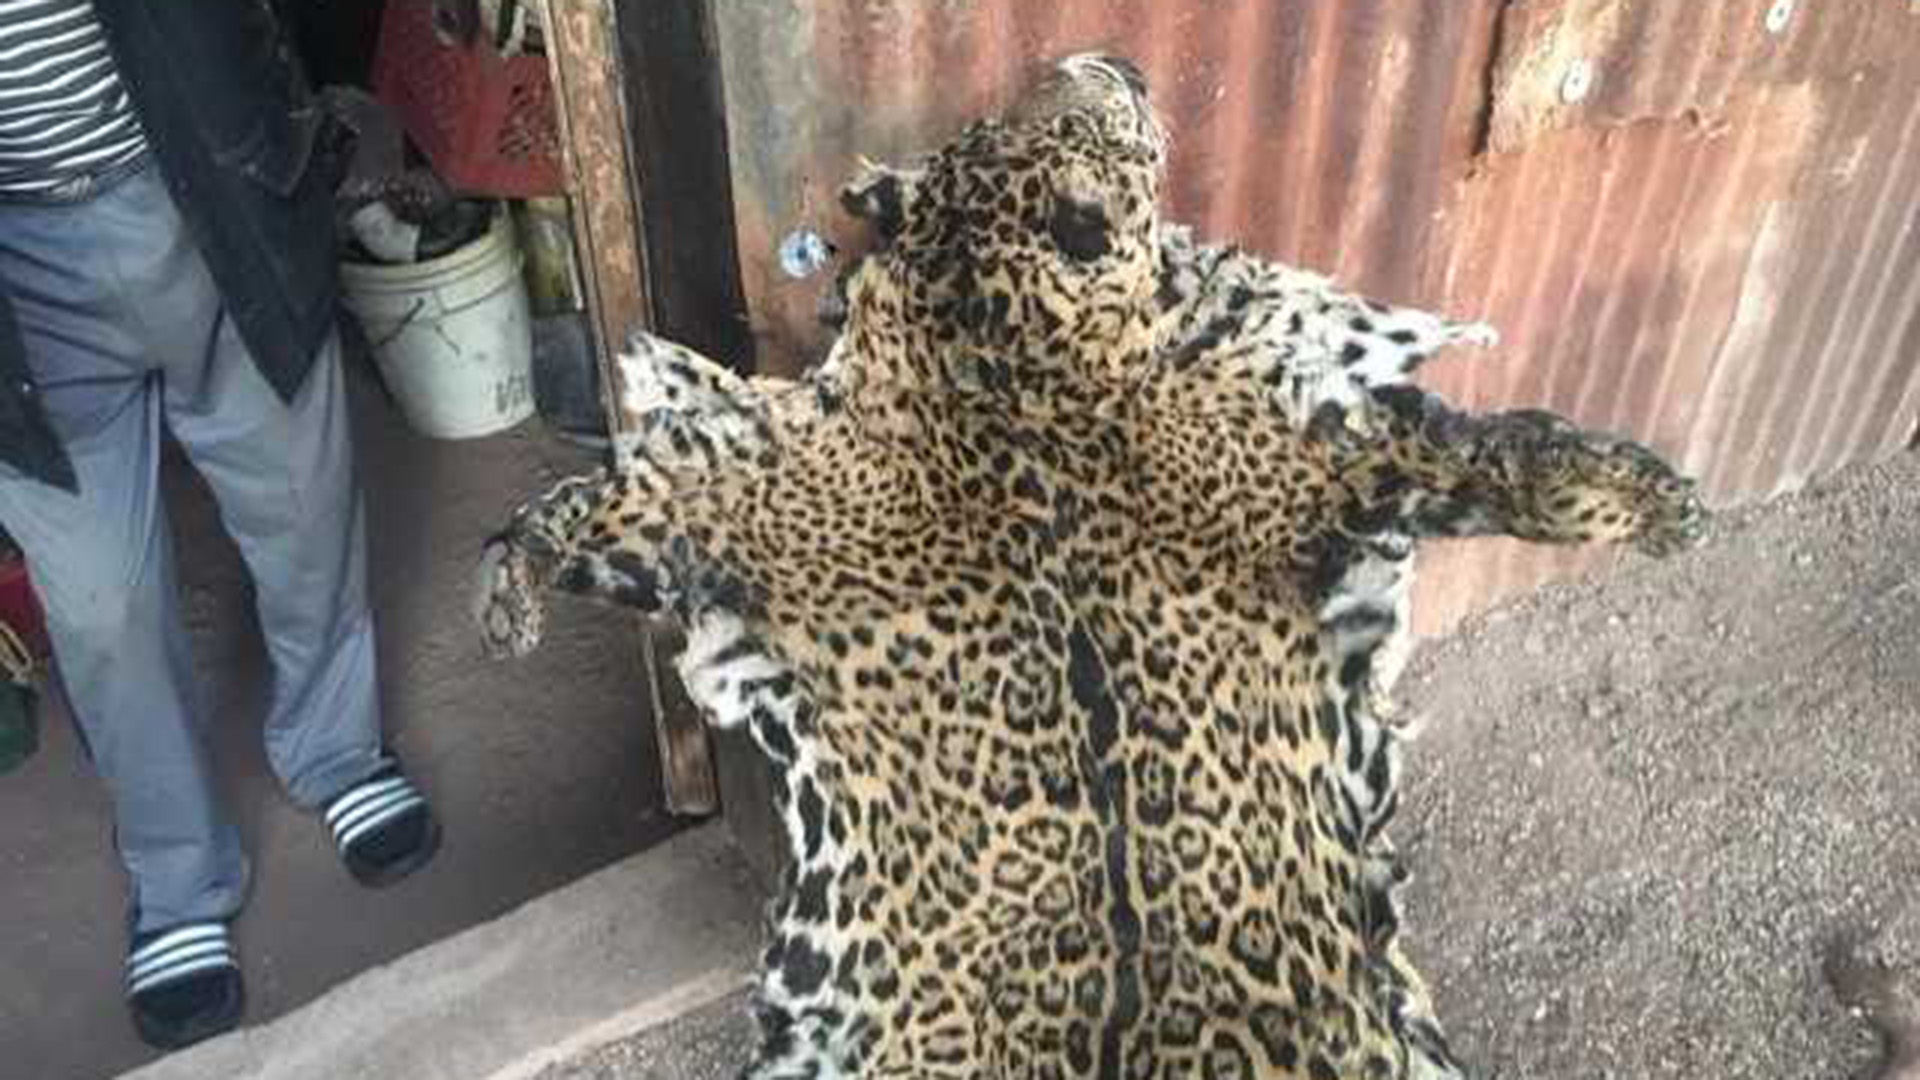 Government officials received this picture of a jaguar pelt, and biologists say its spots correspond to those on a jaguar seen in pictures taken by a trail camera in Arizona.